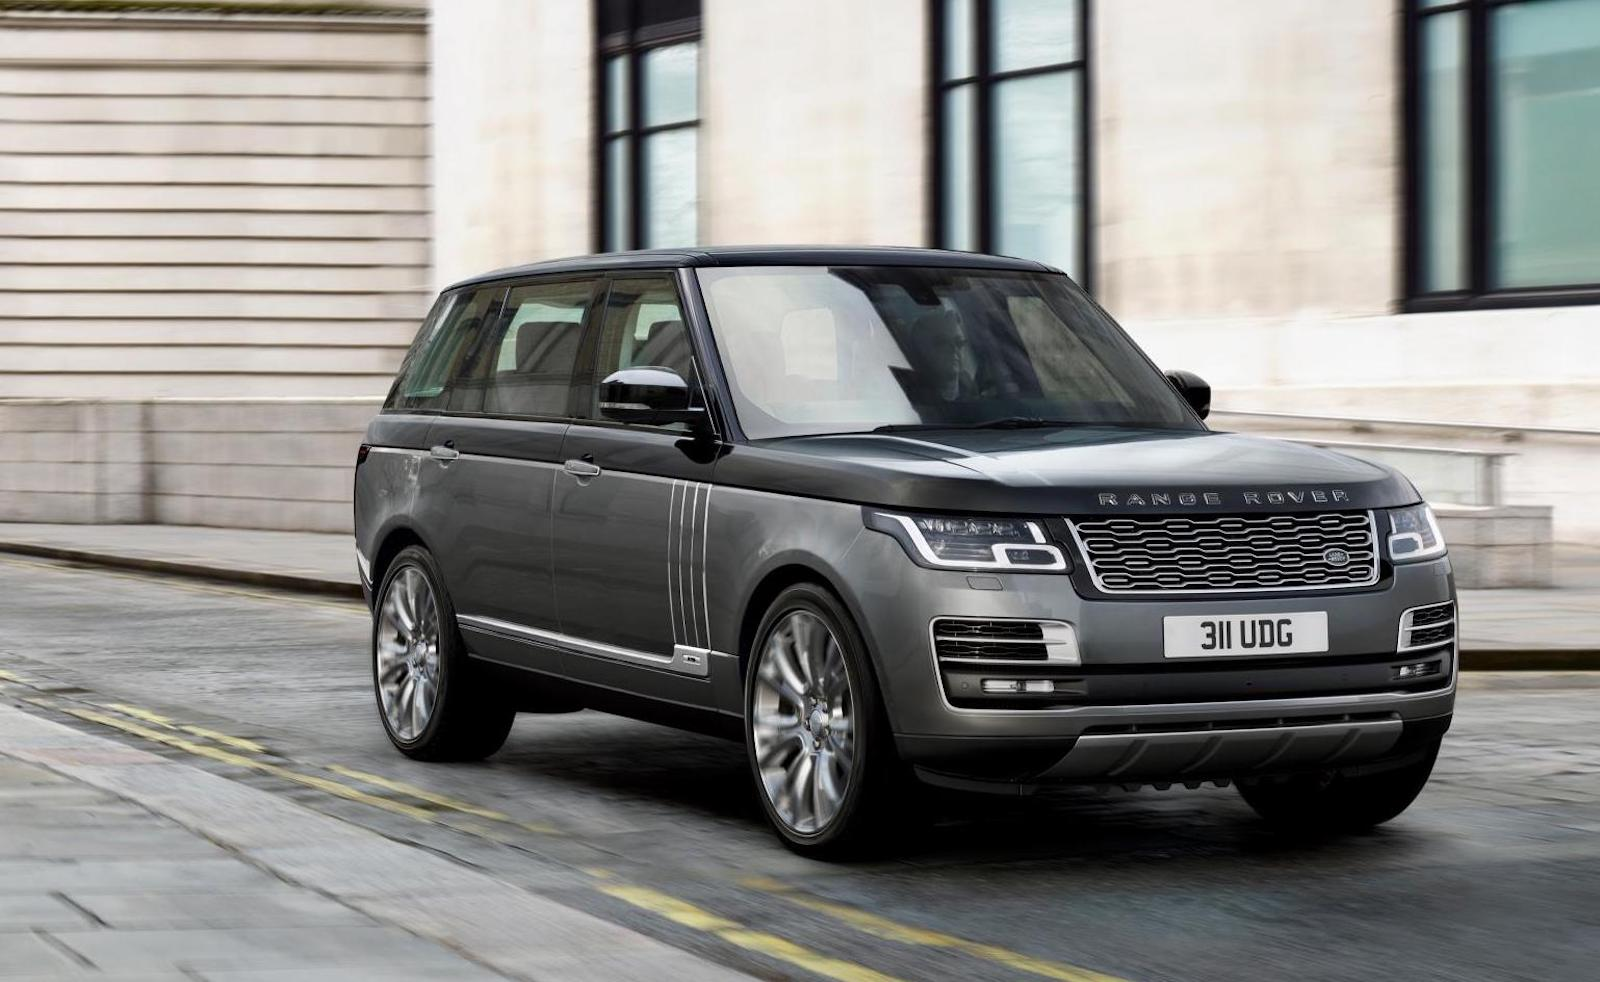 2018 range rover autobiography debuts with phev option lwb only performancedrive. Black Bedroom Furniture Sets. Home Design Ideas